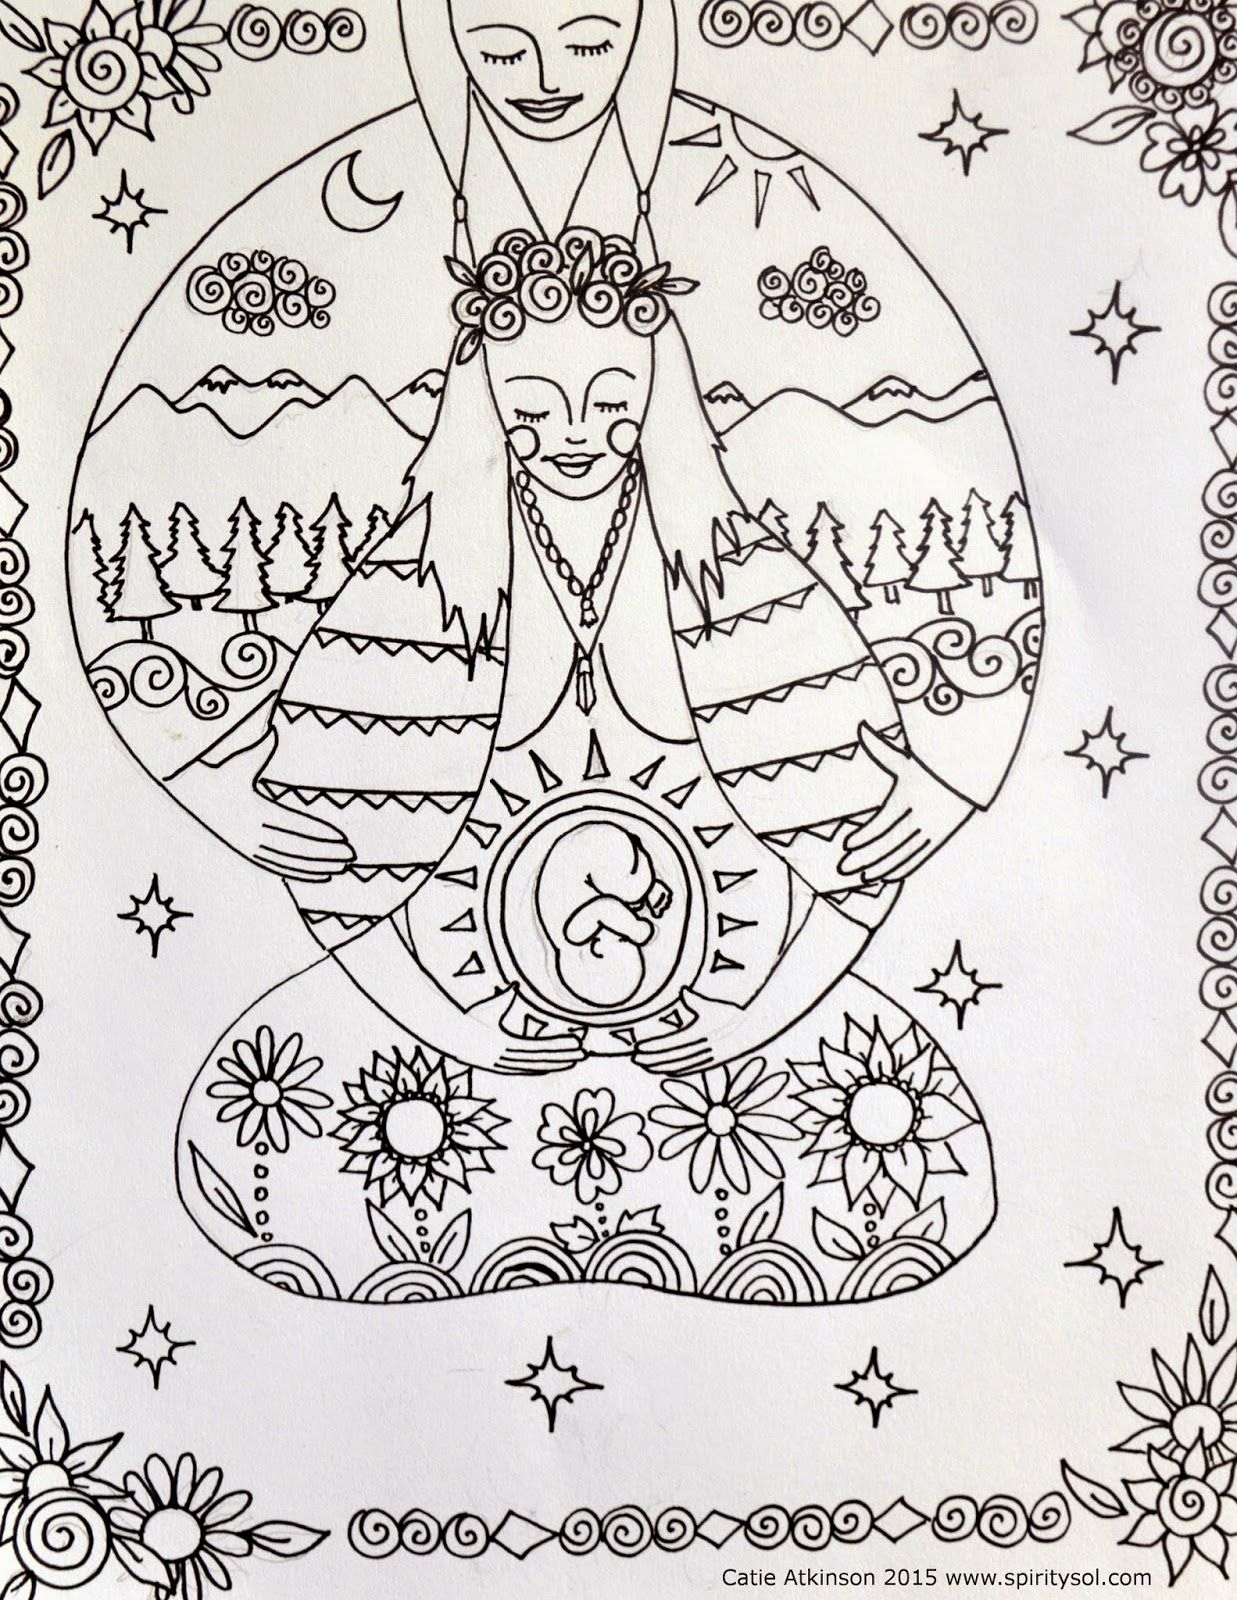 Spirit & Sol: FREE COLORING PAGES | Babiessss | Pinterest | Birth ...